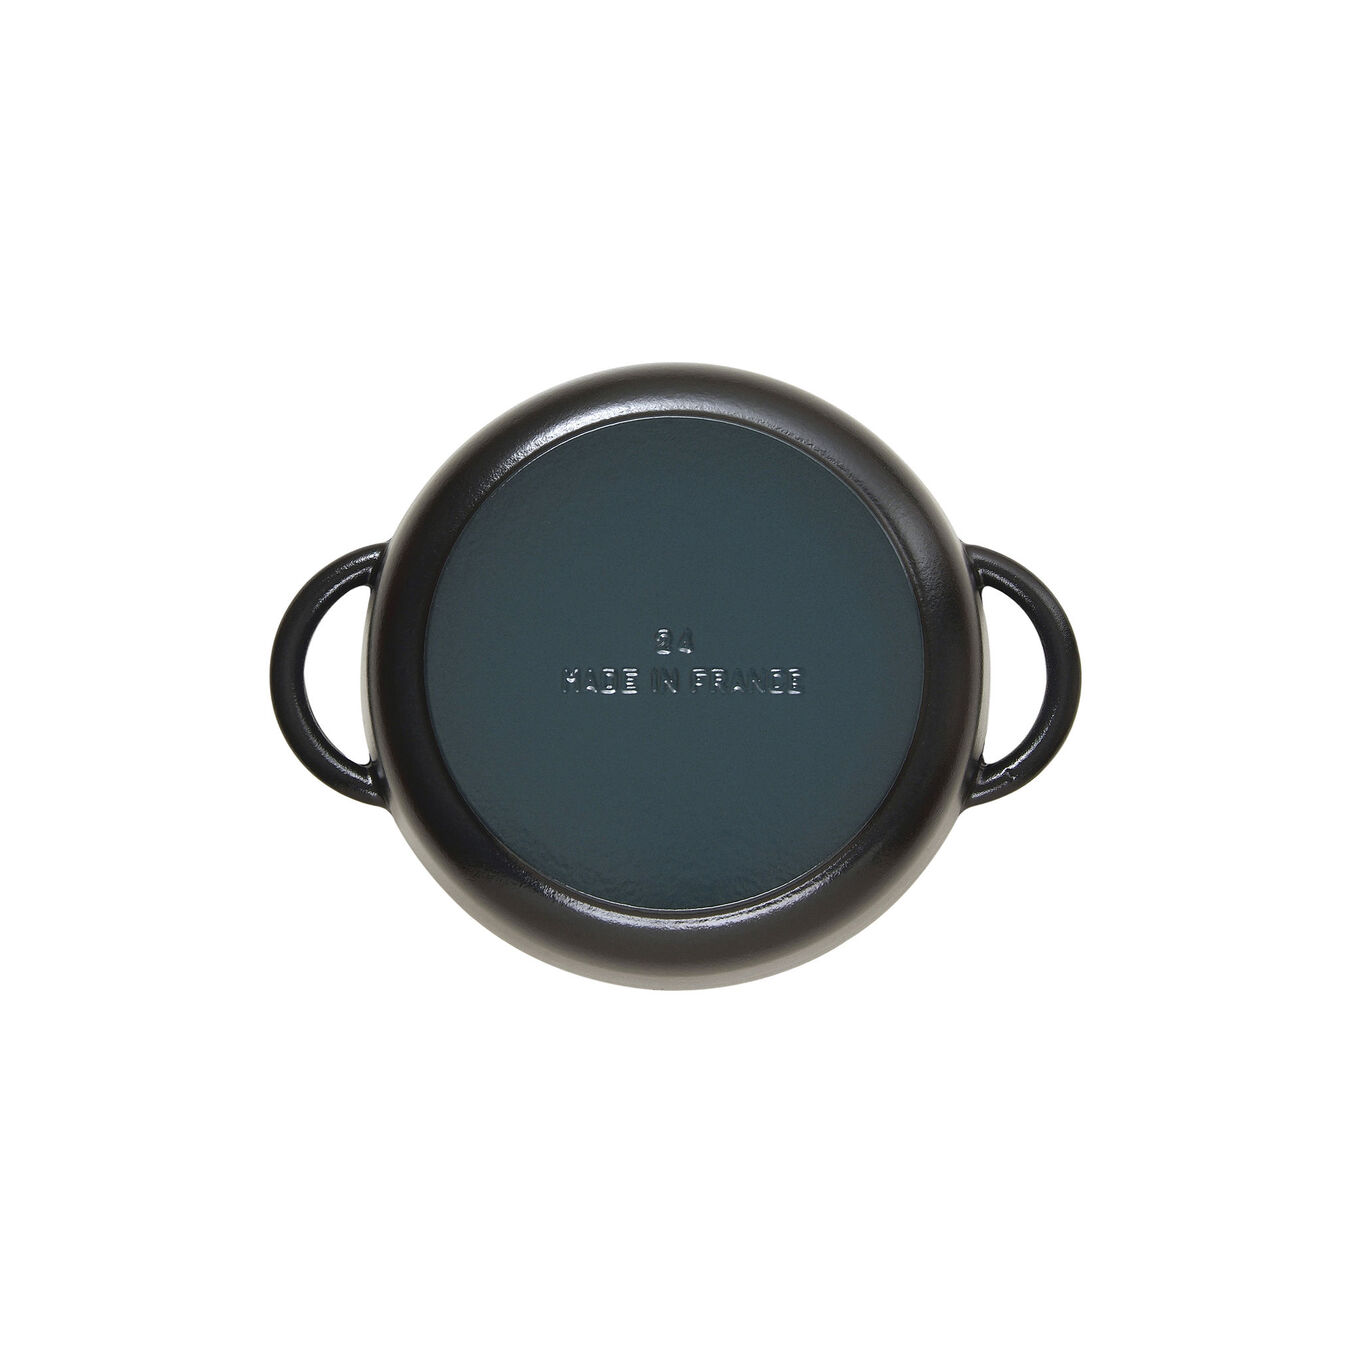 Sauteuse with glass lid 28 cm, Fonte,,large 5